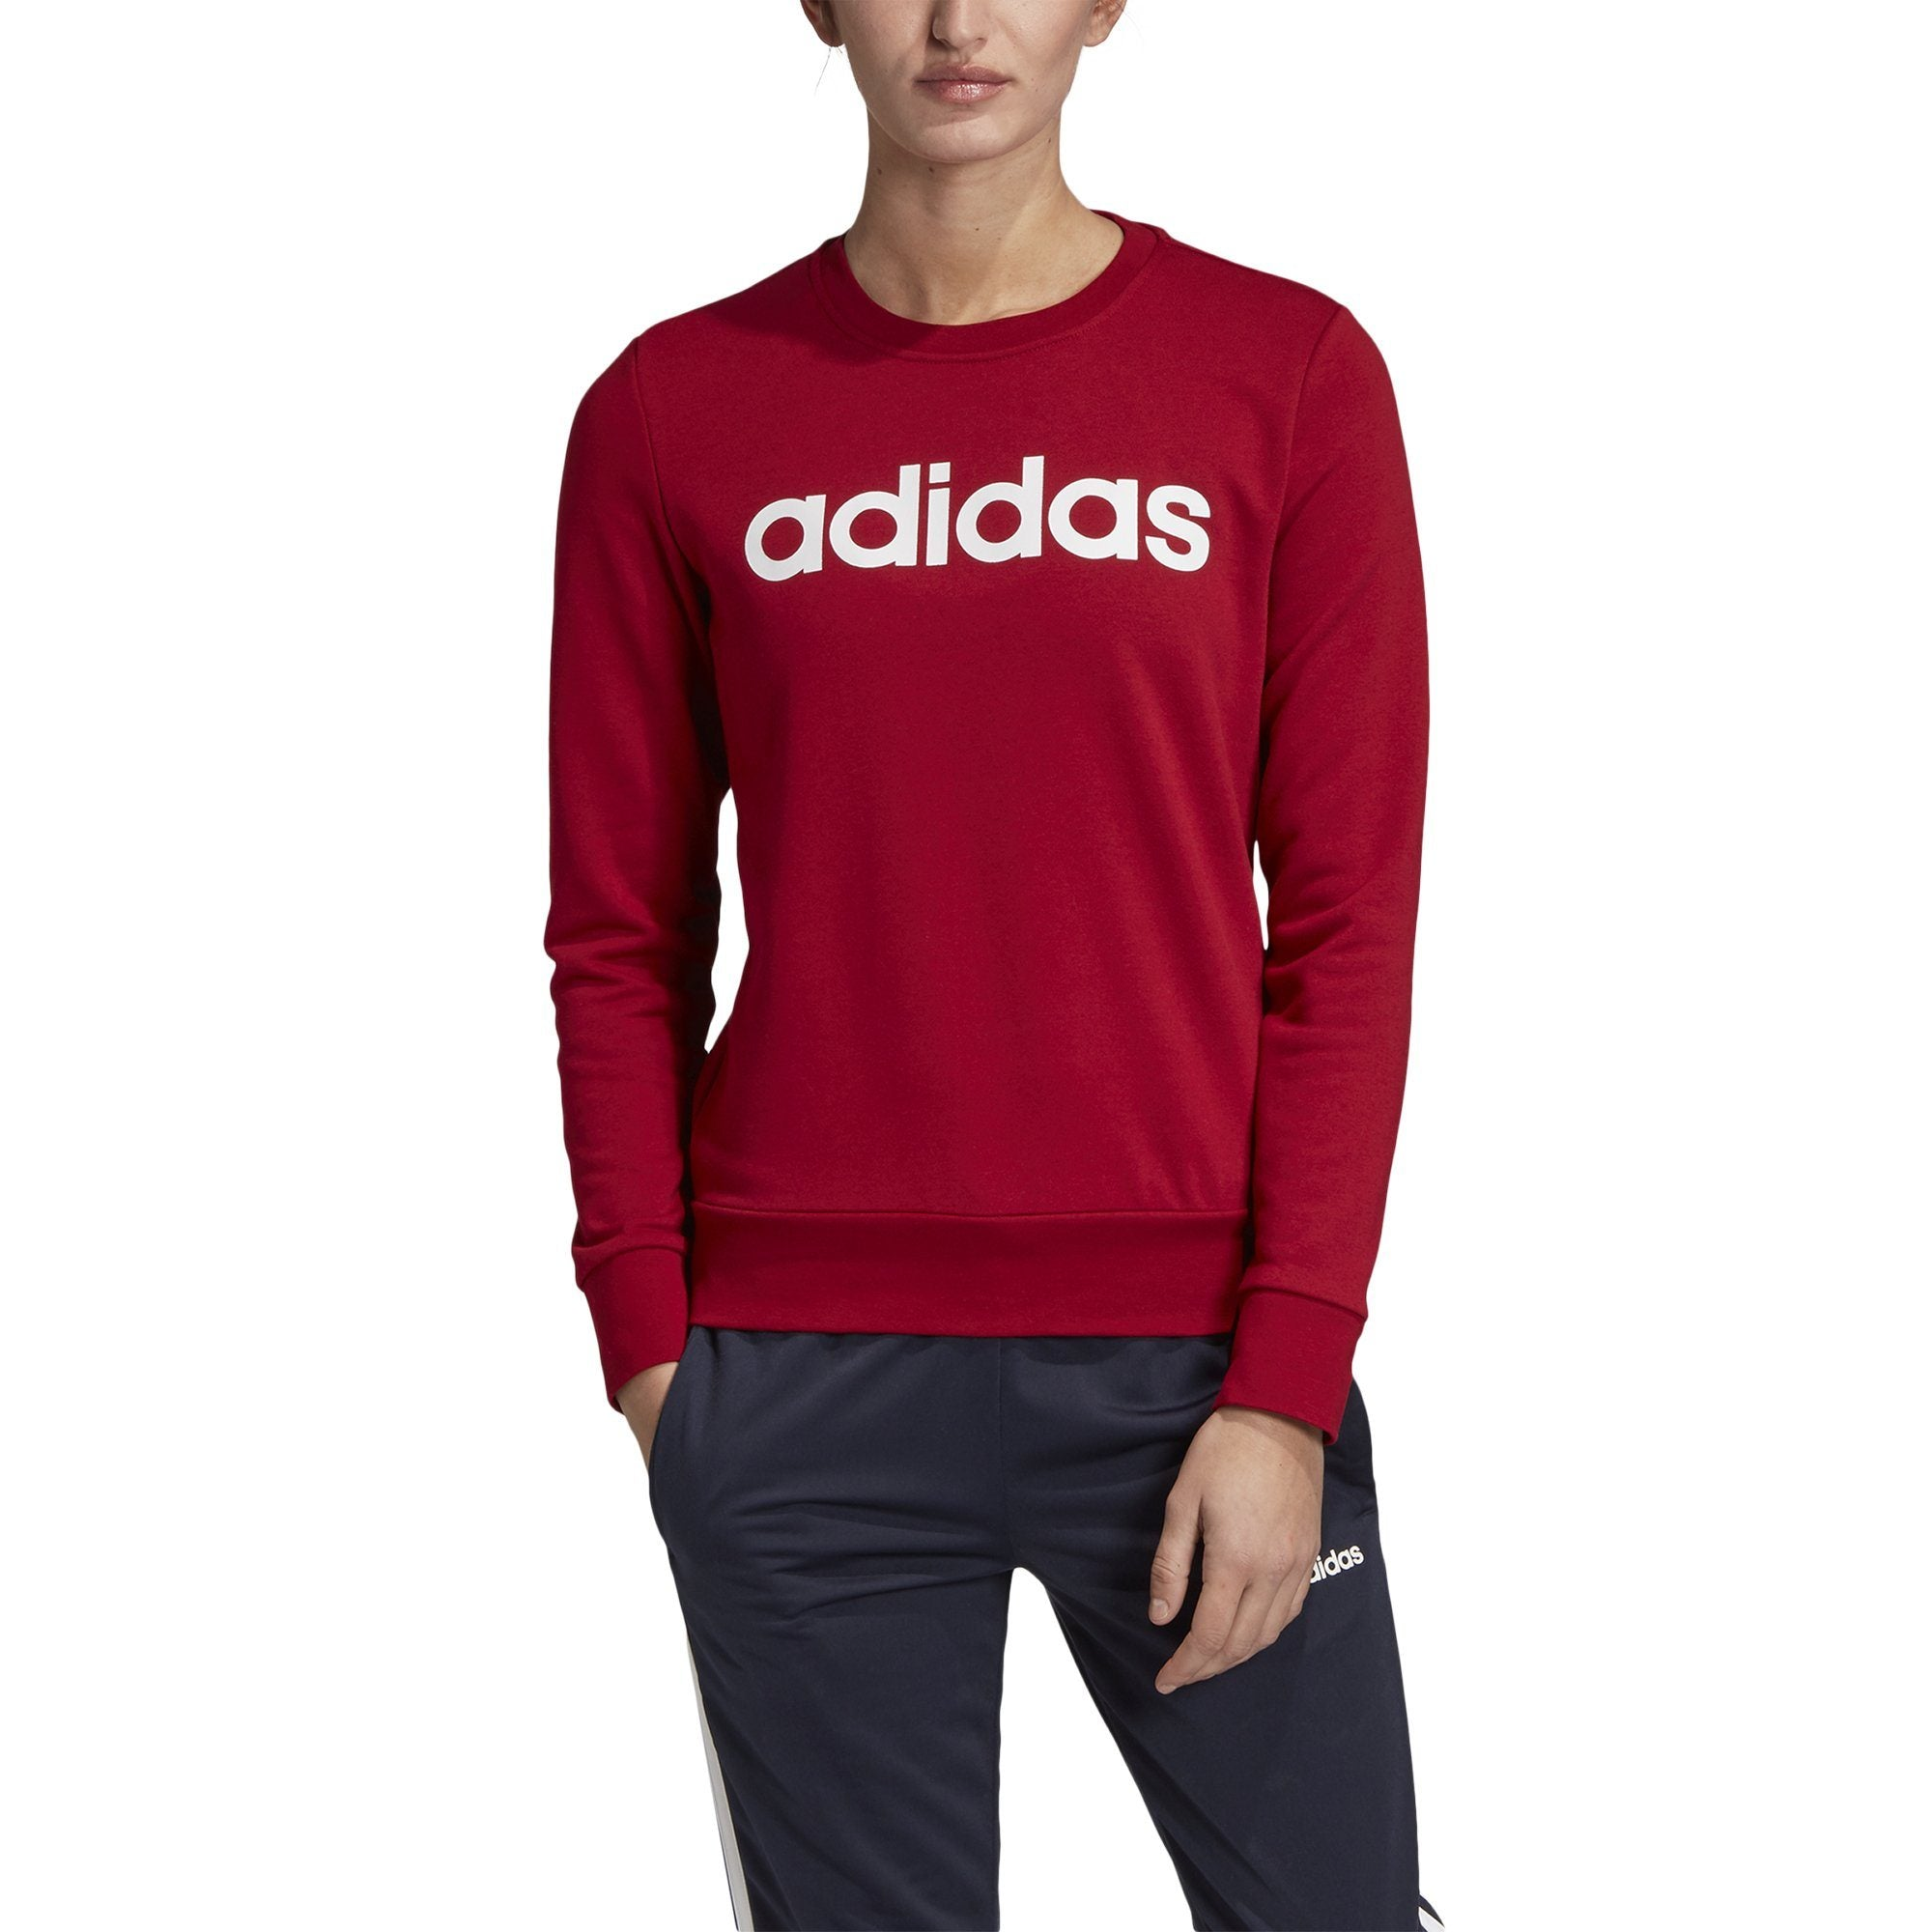 Adidas Womens Essentials Linear Sweatshirt - active maroon-white Womens Apparel Adidas